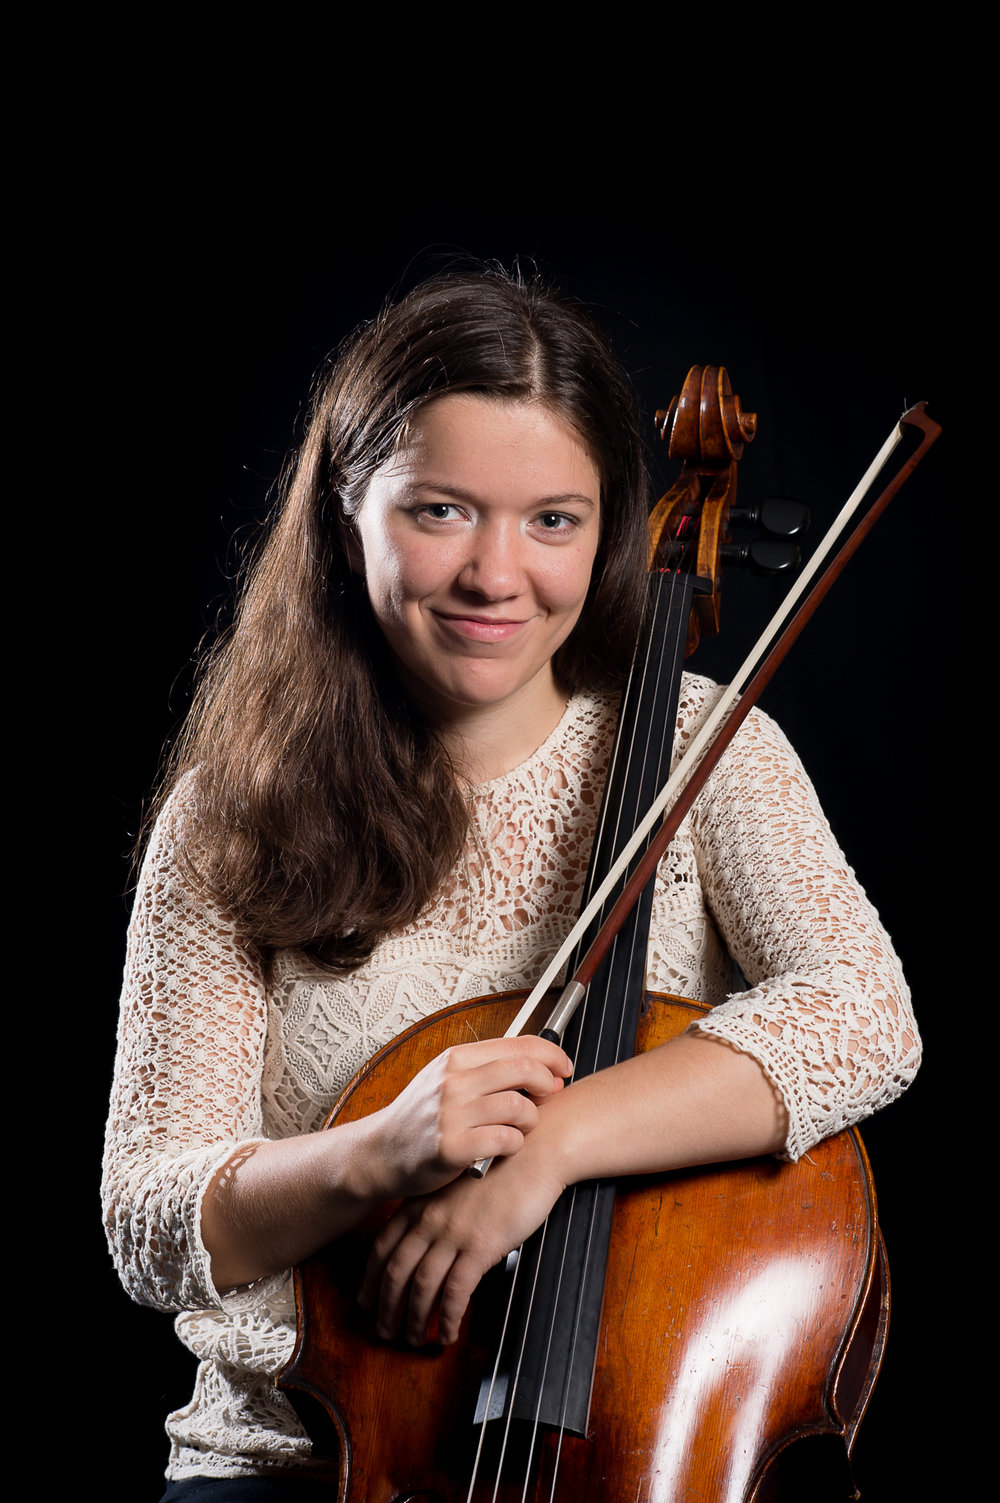 Anastasia Feruleva - The cellist Anastasia Feruleva was born in 1992 in Arkhangelsk, Russia. She has performedin her native country from early childhood on, and her concert engagements have taken her since also to Norway, Finland, Germany, Italy, France, Belgium, Romania and the Netherlands, where she has finished her bachelor degree with Larissa Groeneveld at the RoyalConservatoire in The Hague with 10 with distinction. In February 2018 she has finished her master studies cum laude with Troels Svane at the Hochshule für Musik Hanns Eisler inBerlin.As a soloist, Anastasia has performed works of Dvorak, Lalo, Tchaikovsky, Brahms and Vivaldi with orchestras in the Netherlands,Germany and Russia.Anastasia has been awarded prizes in various competitions from a very early age. Recently she has been awarded the second prize and a prize for the best interpretation of thecommissioned work on the National Cello Biennale competition in Amsterdam. . She has gained her orchestra experience with the Royal Concertgebouw Orchestra and the Netherlands Philharmonic/Netherlands Chamber Orchestra.She plays a cello by Rombouts (1710),which has been given to her on loan.